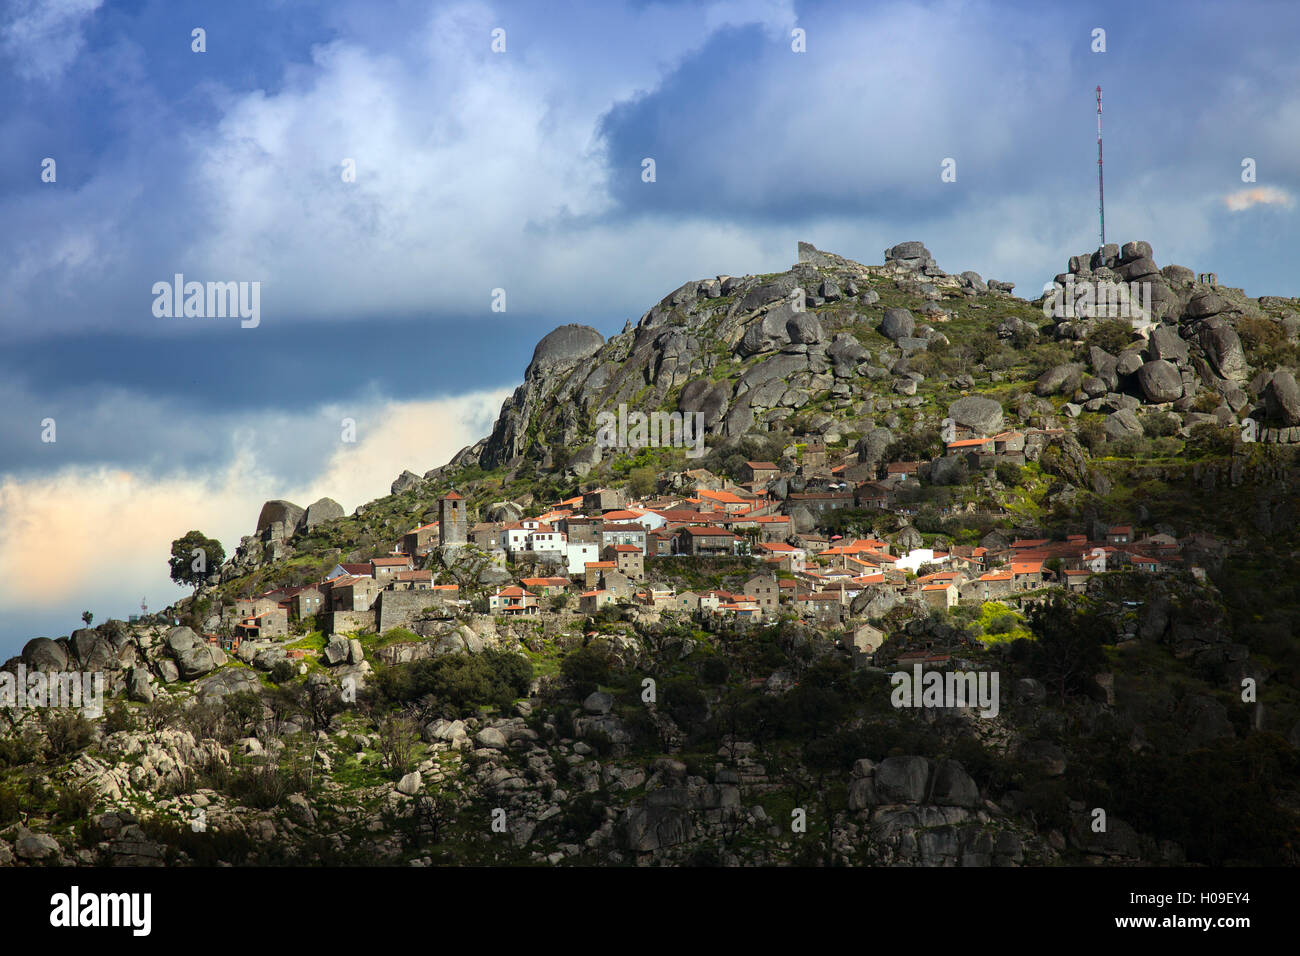 The medieval village of Monsanto in the municipality of Idanha-a-Nova, Monsanto, Beira, Portugal, Europe - Stock Image